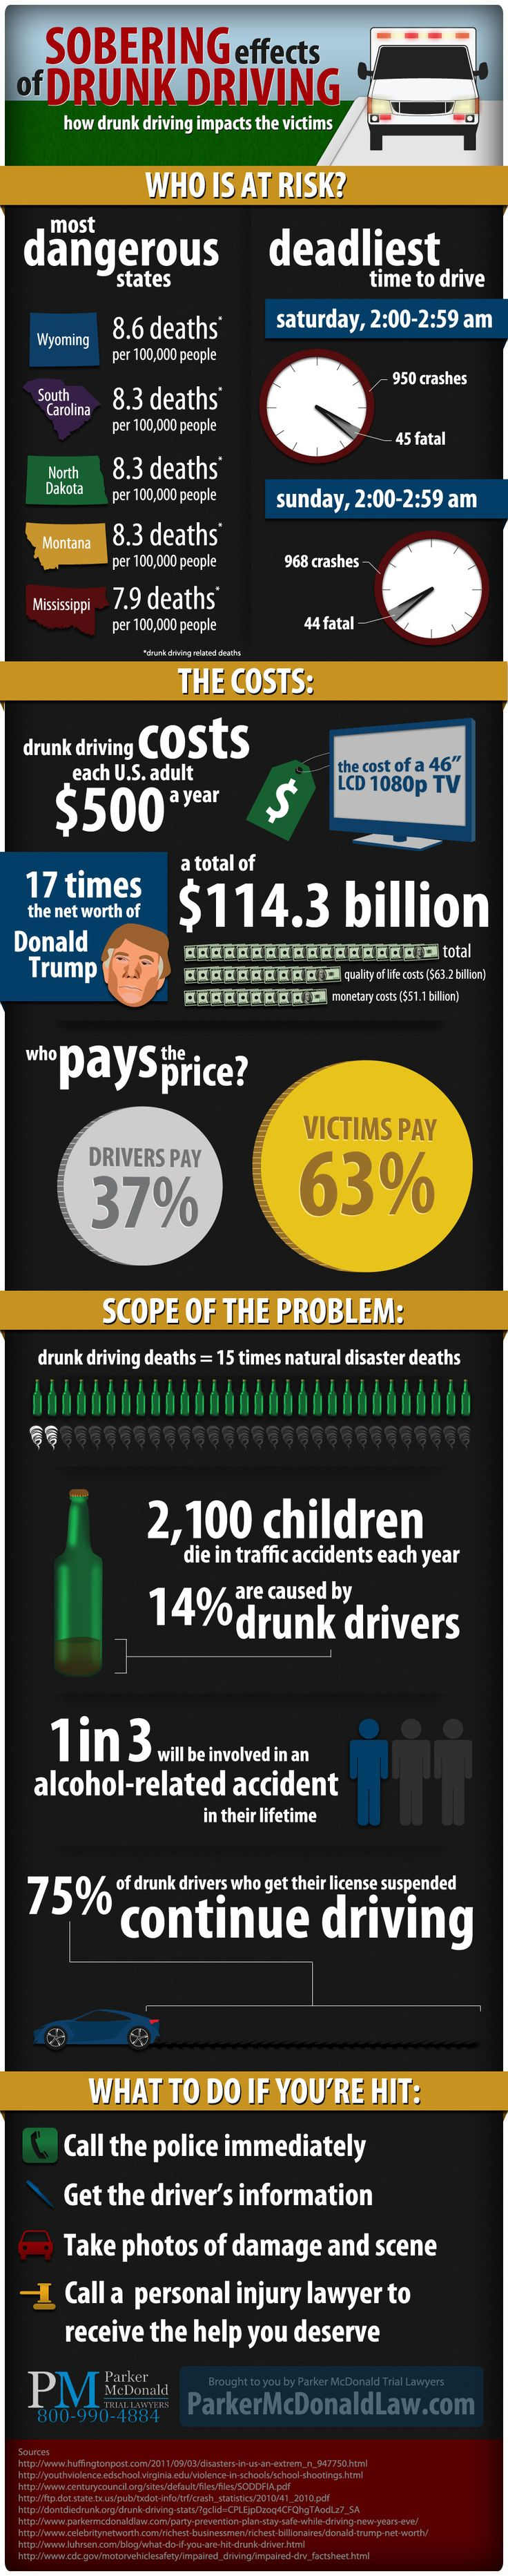 The Sobering Effects Of Drunk Driving [Infographic] - USA | #Infographic #Drinking | It is amazing that people drink and drive everyday. Worse still they get away with it.  Heaven forbid a drunk driver causes an accident or death by drinking/driving.